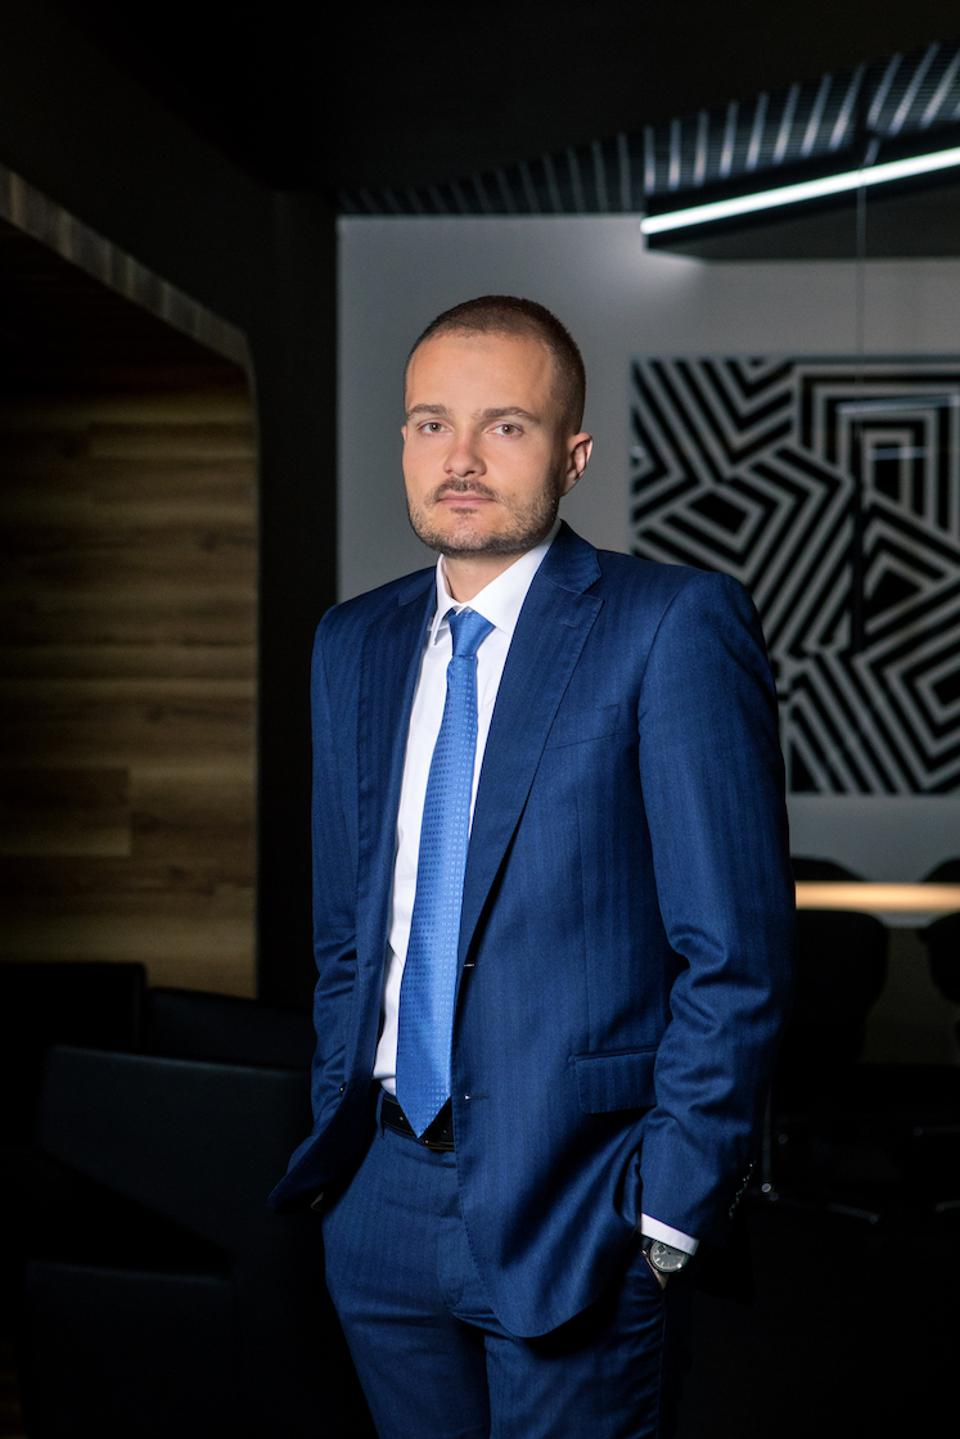 Michal Strnad is keen to develop CSG's IP